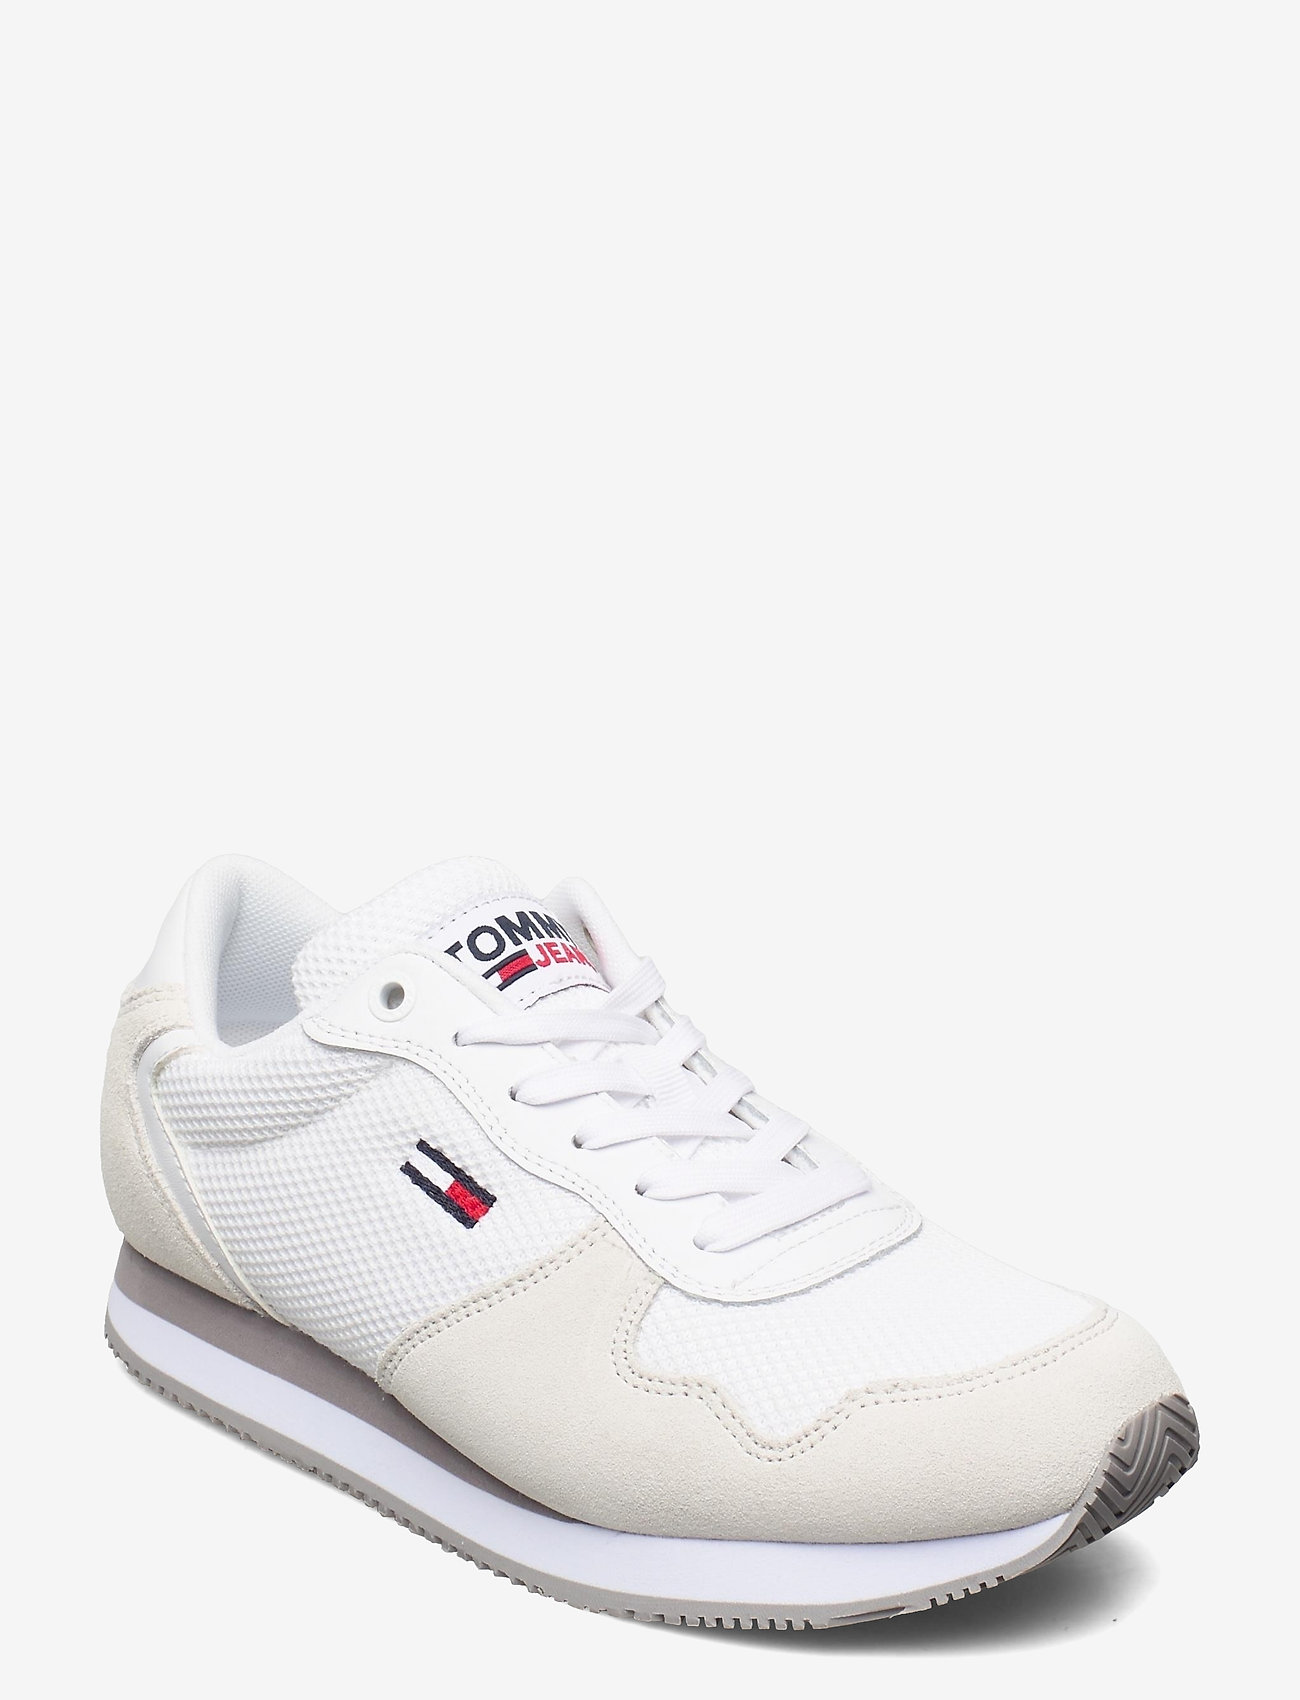 Tommy Hilfiger - TOMMY JEANS MONO SNEAKER - low top sneakers - white - 0